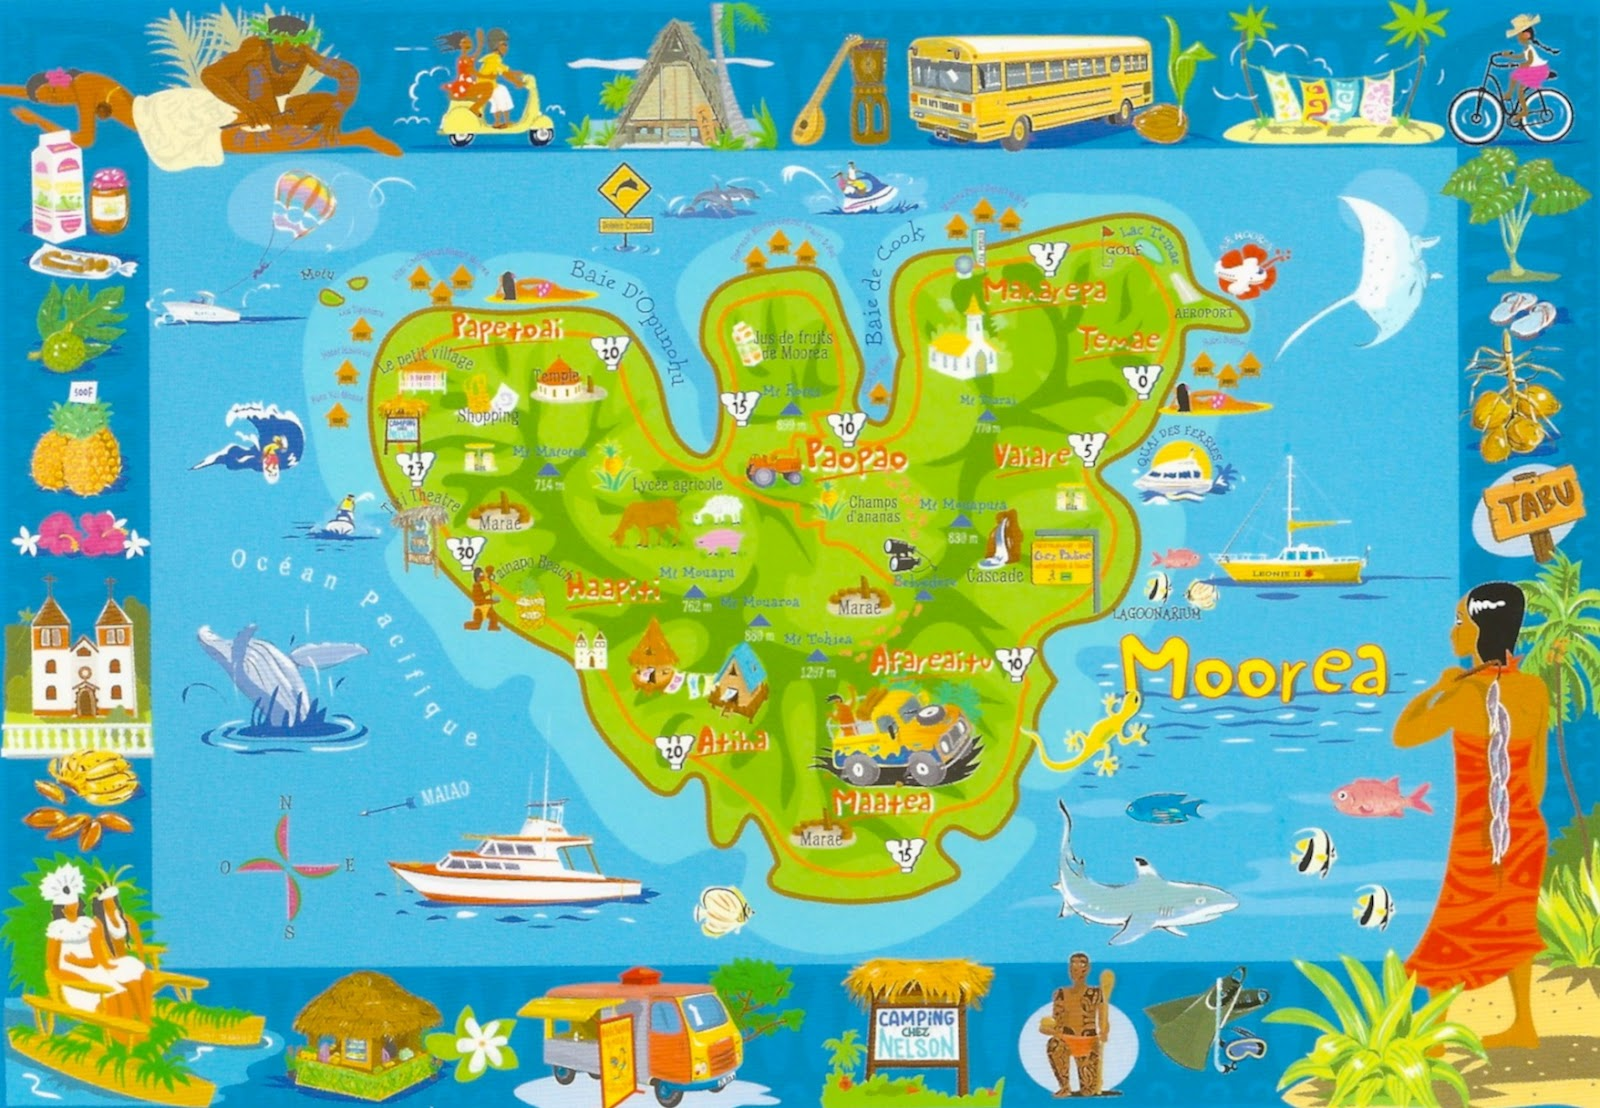 My favorite views french polynesia moorea map of the island french polynesia moorea map of the island gumiabroncs Gallery